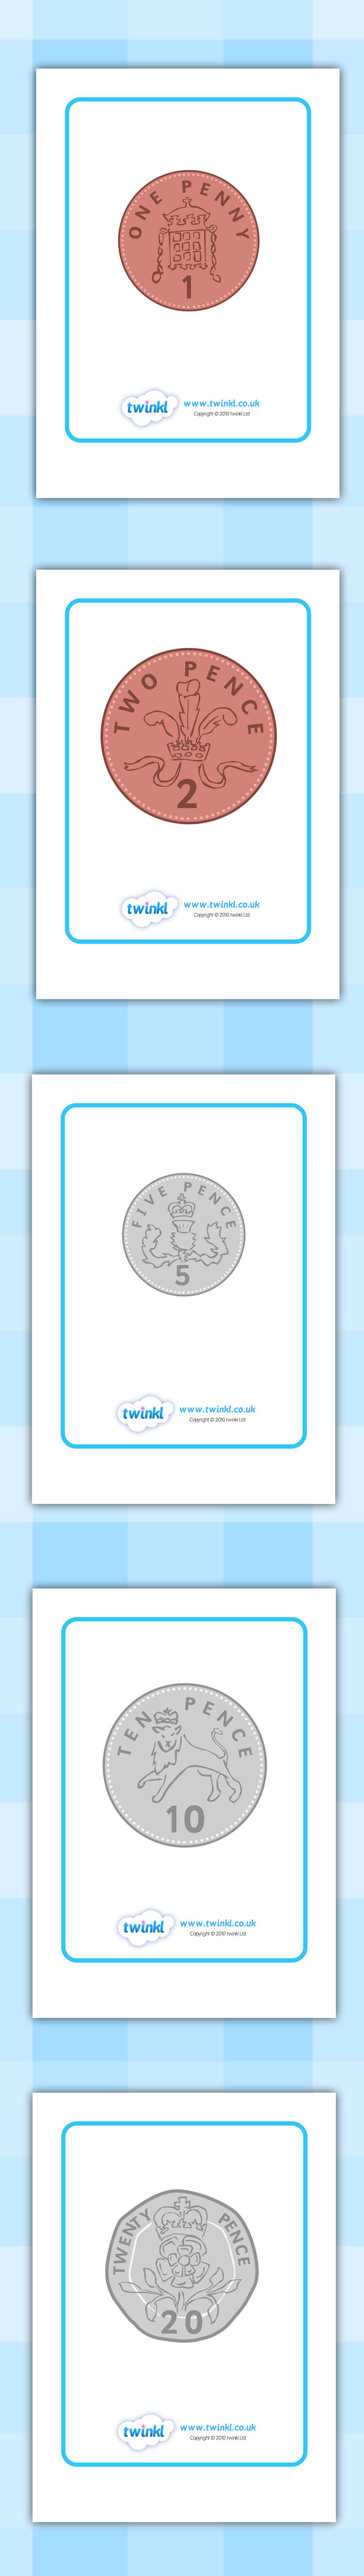 Twinkl Resources >> British Coin Display Posters >> Printable ...